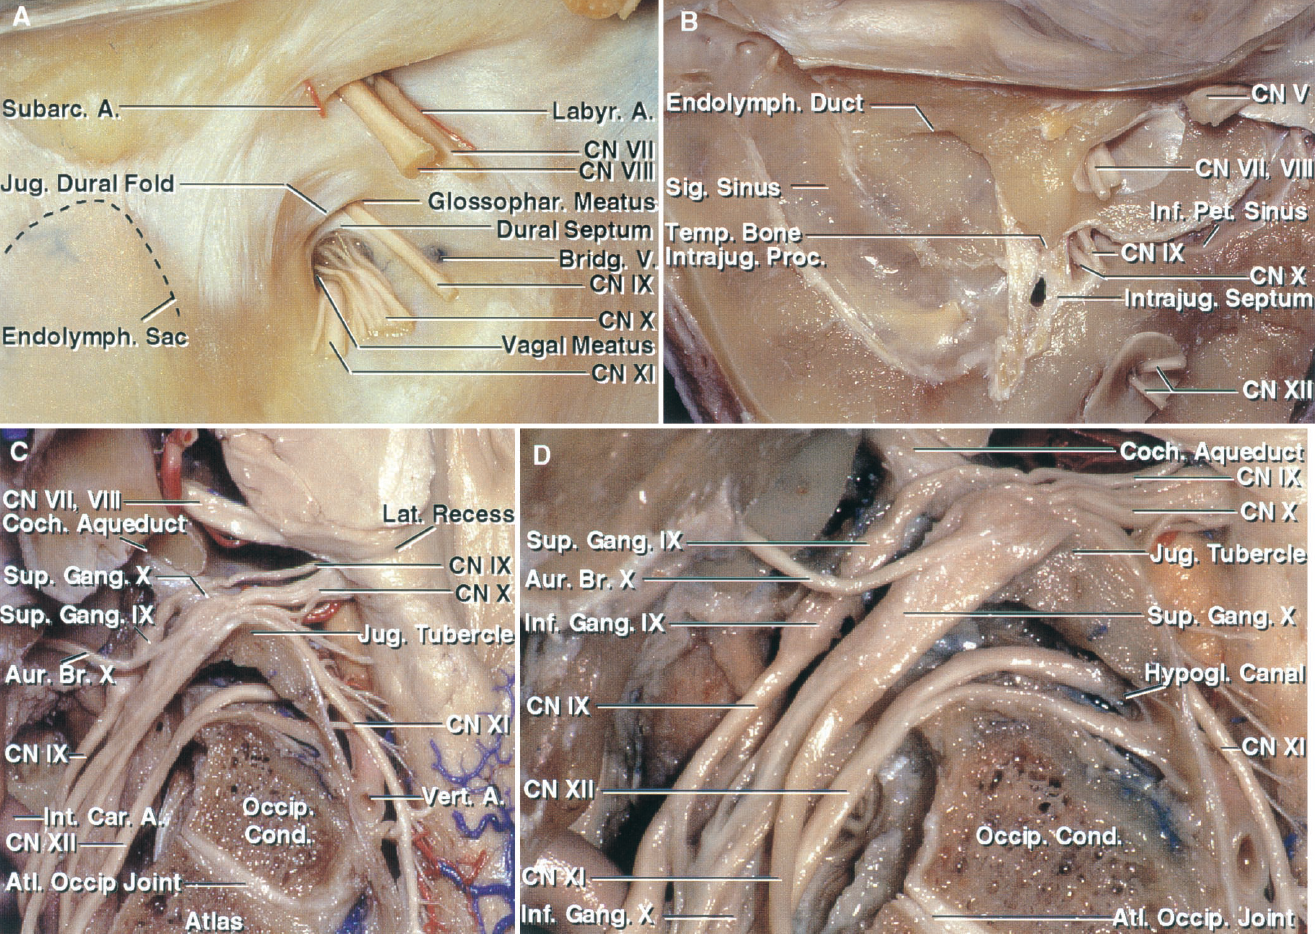 FIGURE 9.5. A, posterior view of the intracranial aspect of the left jugular foramen. The glossopharyngeal, vagus, and accessory nerves pierce the dural roof of the jugular foramen. The glossopharyngeal nerve is separated from the vagus nerve by a narrow dural septum. The jugular dural fold projects downward and medially from the lateral and upper margin of the jugular foramen over the site at which the nerves enter the dura roof of the foramen. The facial and vestibulocochlear nerves and labyrinthine artery enter the internal acoustic meatus. The subarcuate branch of the anteroinferior cerebellar artery enters the subarcuate fossa. The endolymphatic sac is located between the dural layers lateral to the jugular foramen. A bridging vein from the medulla joins the inferior petrosal sinus on the medial side of the jugular bulb. B, the dura has been removed from the posterior surface of the temporal bone. The intrajugular processes of the temporal and occipital bones, which are connected by a fibrous bridge, the intrajugular septum, separates the sigmoid and petrosal parts of the foramen. The glossopharyngeal, vagus, and accessory nerves enter the intrajugular part of the foramen by penetrating the dura on the medial side of the intrajugular process of the temporal bone. C, the glossopharyngeal nerve enters the jugular foramen below the cochlear aqueduct. The vagus nerve enters the jugular foramen behind the glossopharyngeal nerve. The auricular branch of the vagus nerve (Arnold's nerve) arises at the level of the superior ganglion and passes around the anterior wall of the jugular bulb. The accessory nerve is formed by multiple rootlets, which arise from the medulla and spinal cord. The accessory rootlets collect together to form a bundle that blends into the lower margin of the vagus nerve at the level of the jugular foramen. The lower vagal and accessory roots pass across the surface of the jugular tubercle. D, enlarged view. The glossopharyngeal nerve expands at th